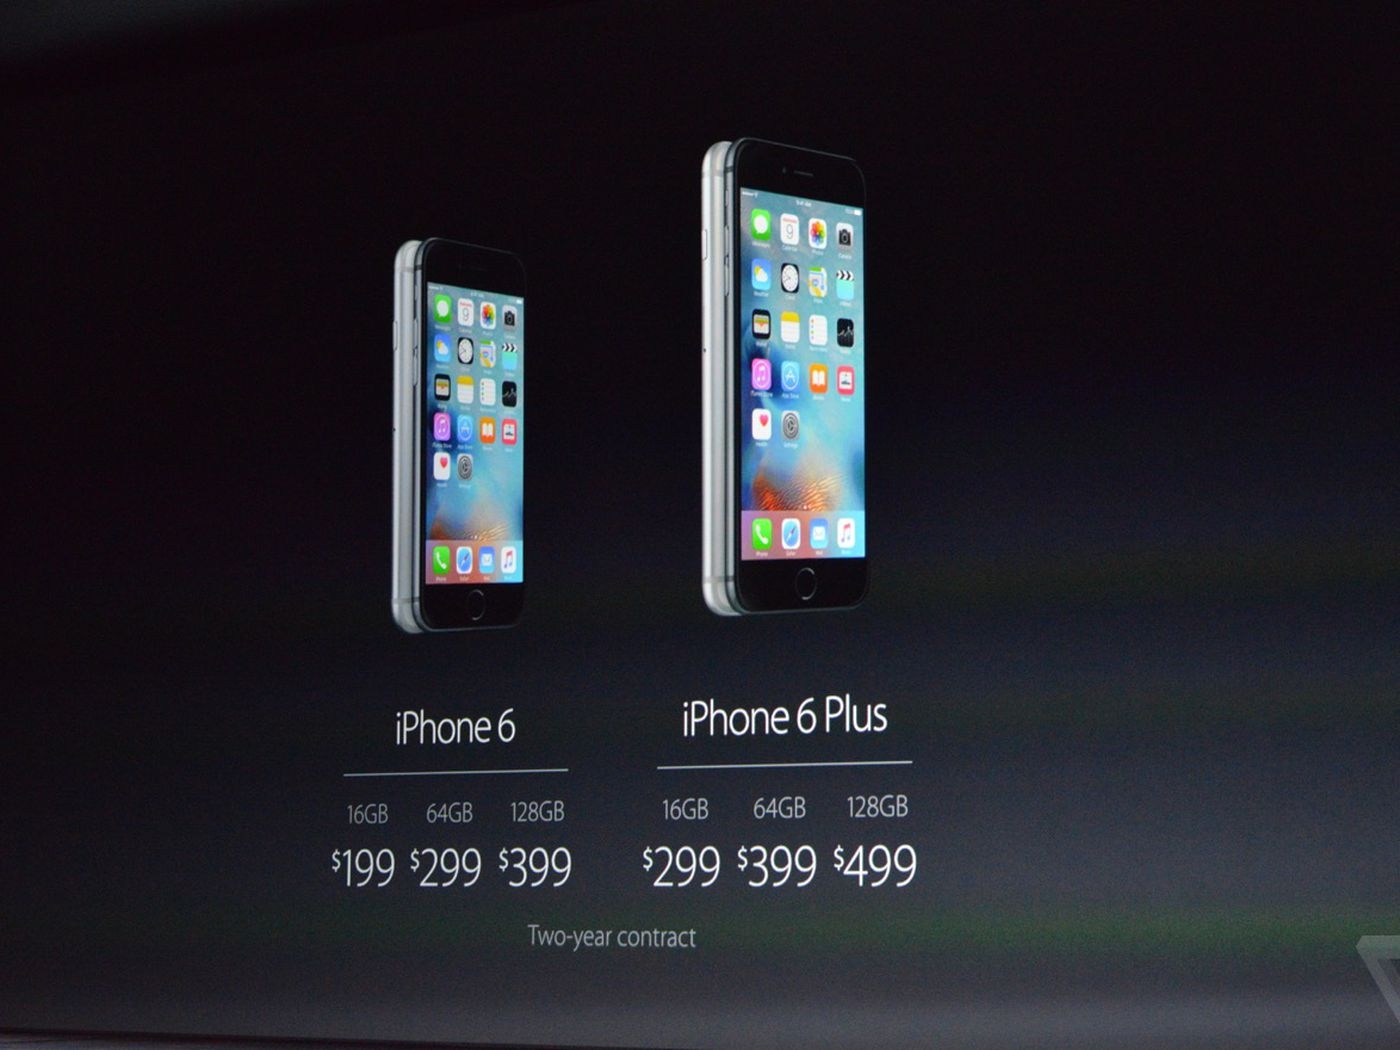 iPhone 6S release date September 25th, prices start at $199 and $299